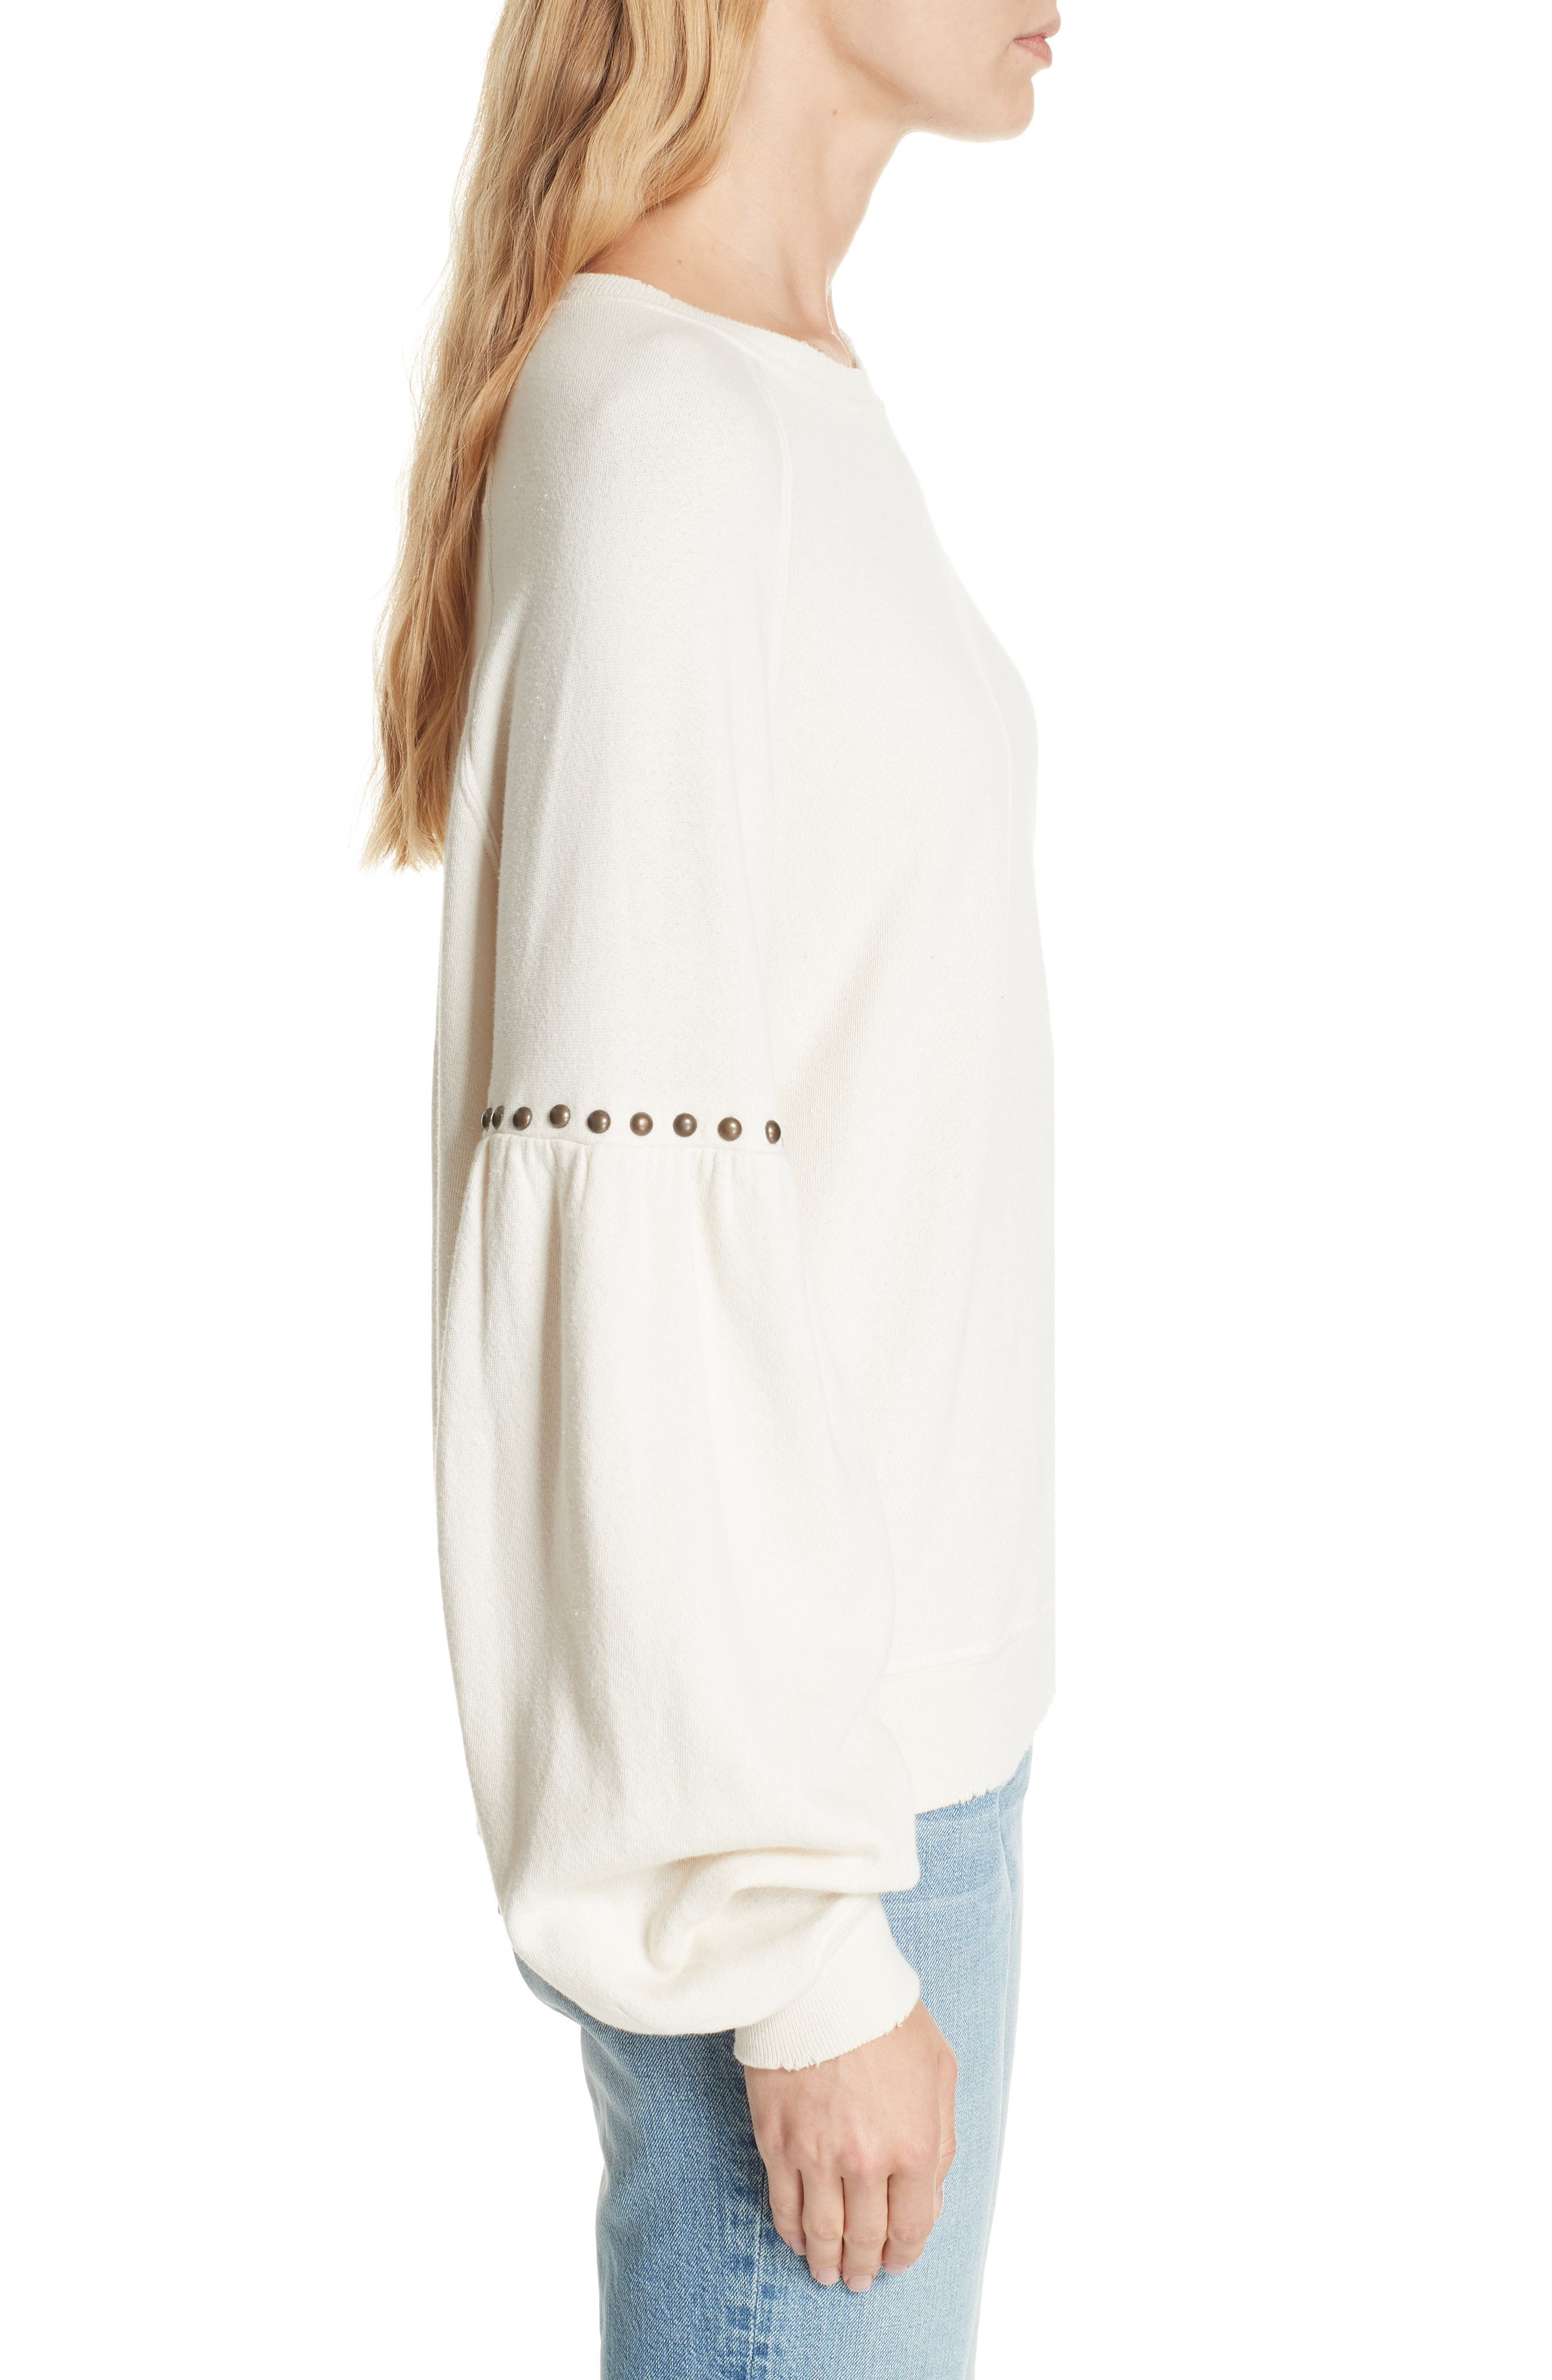 The Bishop Sleeve Studded Sweatshirt,                             Alternate thumbnail 3, color,                             Washed White W/ Studs